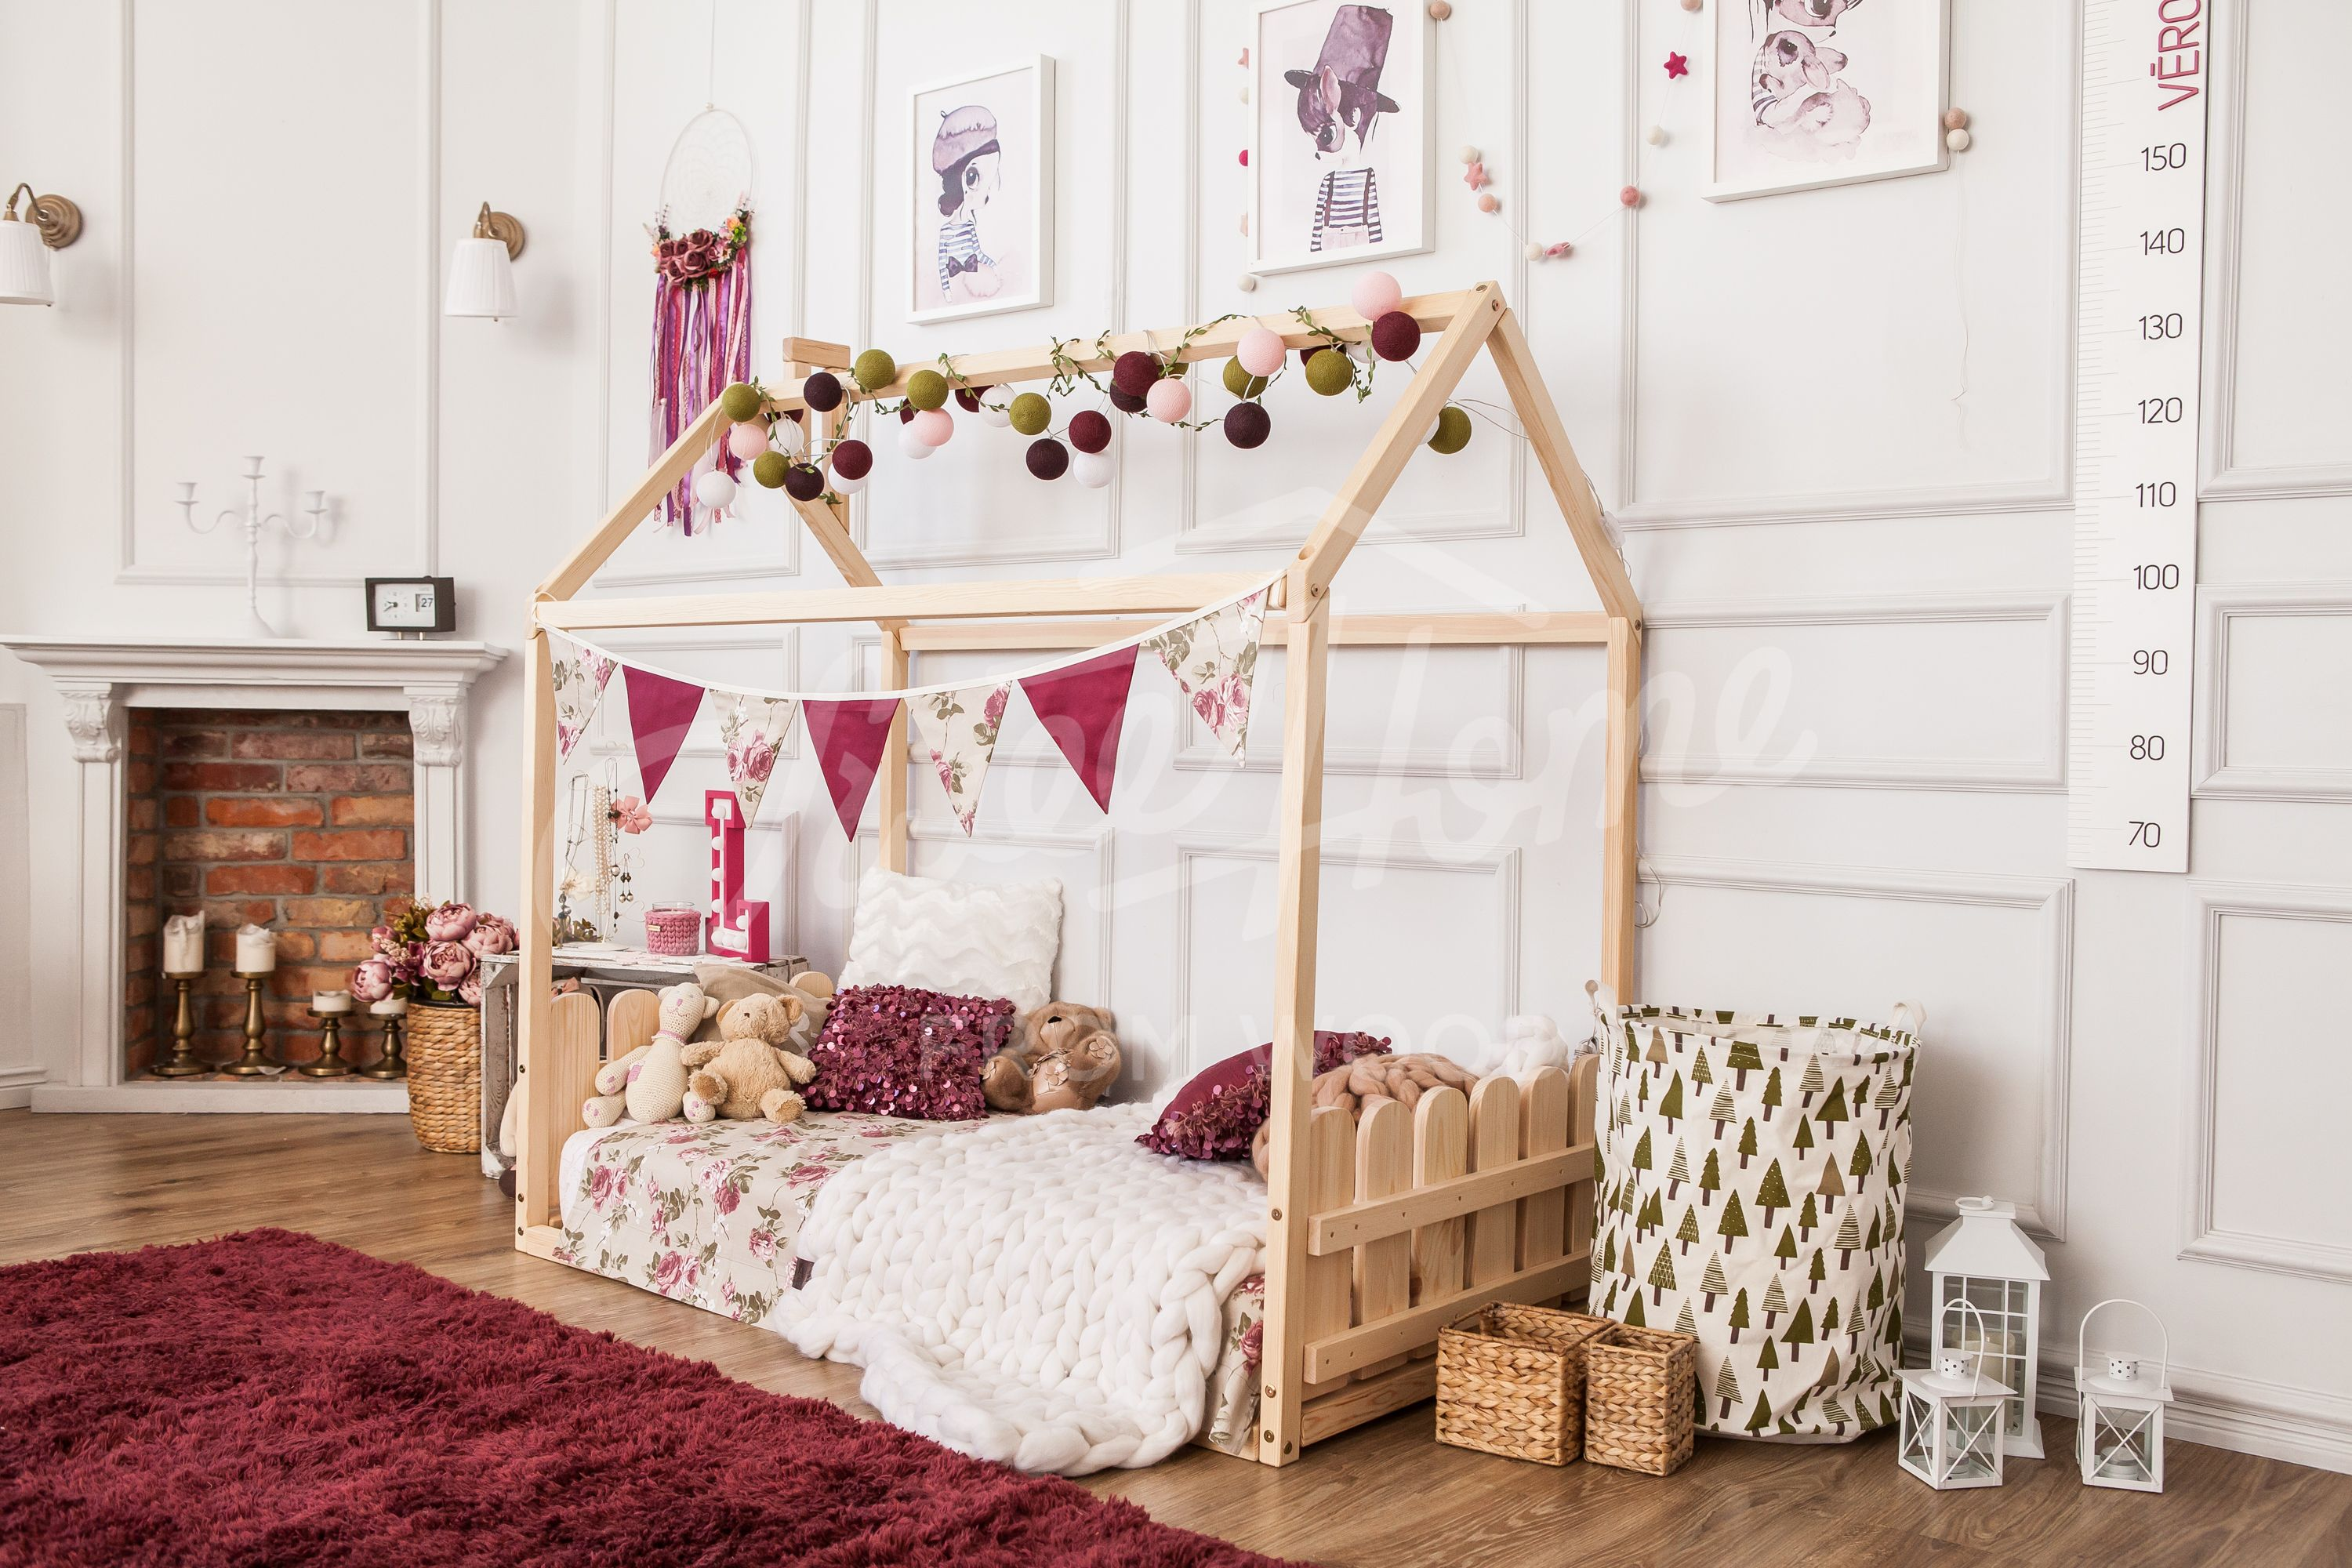 Toddler House Bed Without The Slats Montessori Bed House Kid Bed